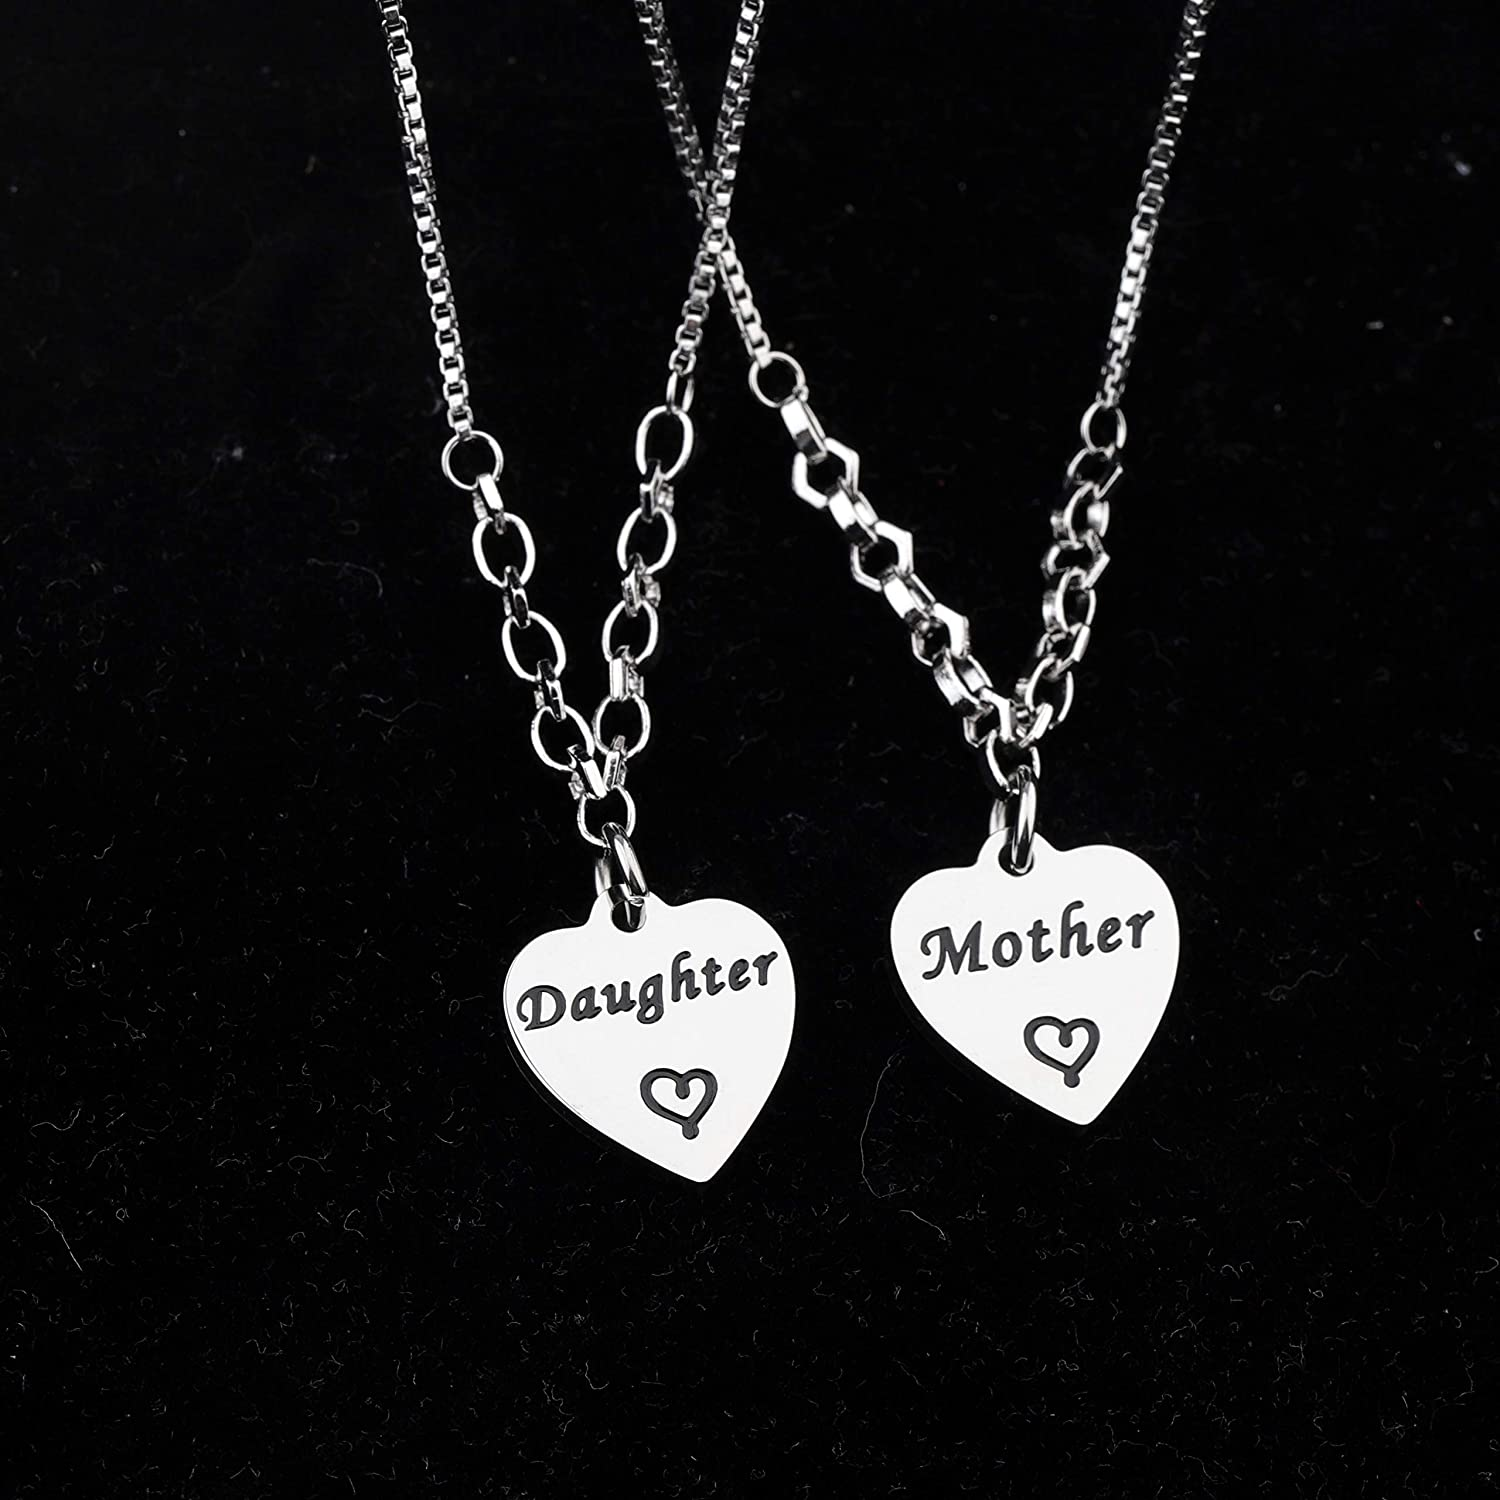 FUSTMW Mother Daughter Bracelet Set Mom and Daughters Jewelry for Mom Birthday Gifts